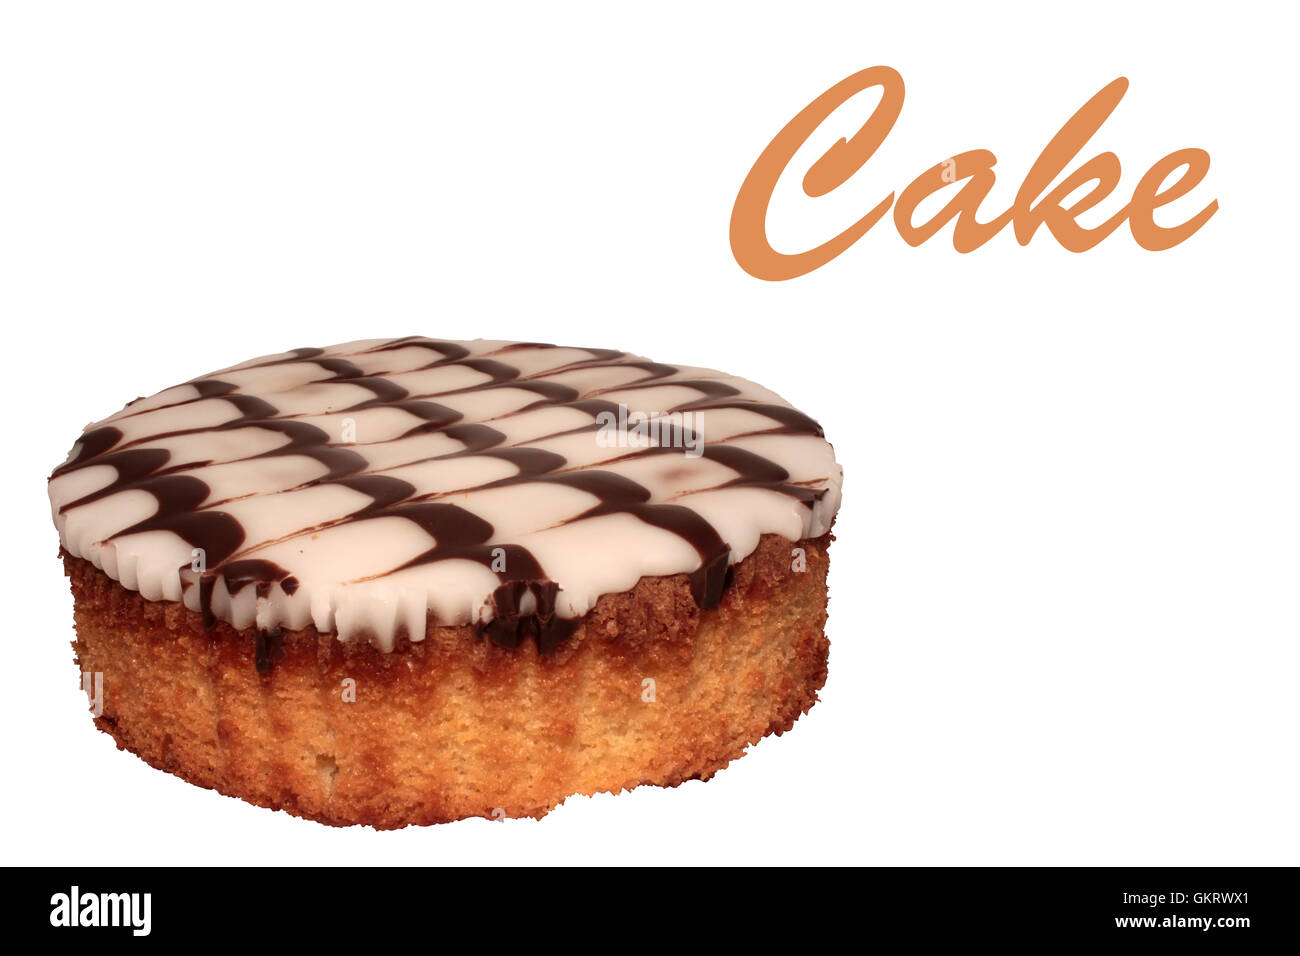 Beautiful Cake over white - Stock Image